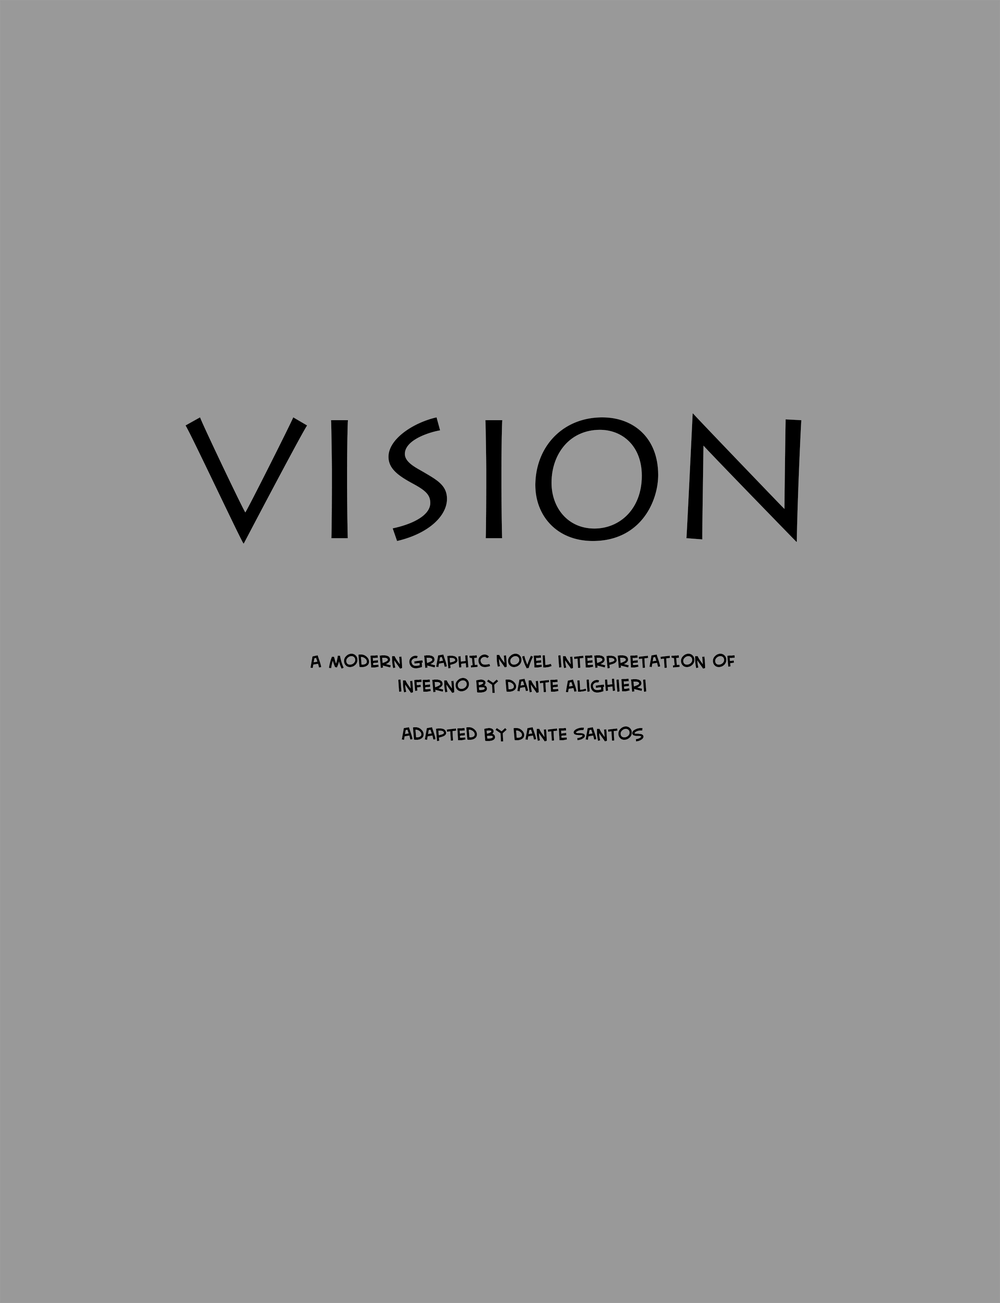 2014-05-19_V_Vision0COVER_SMALL.png